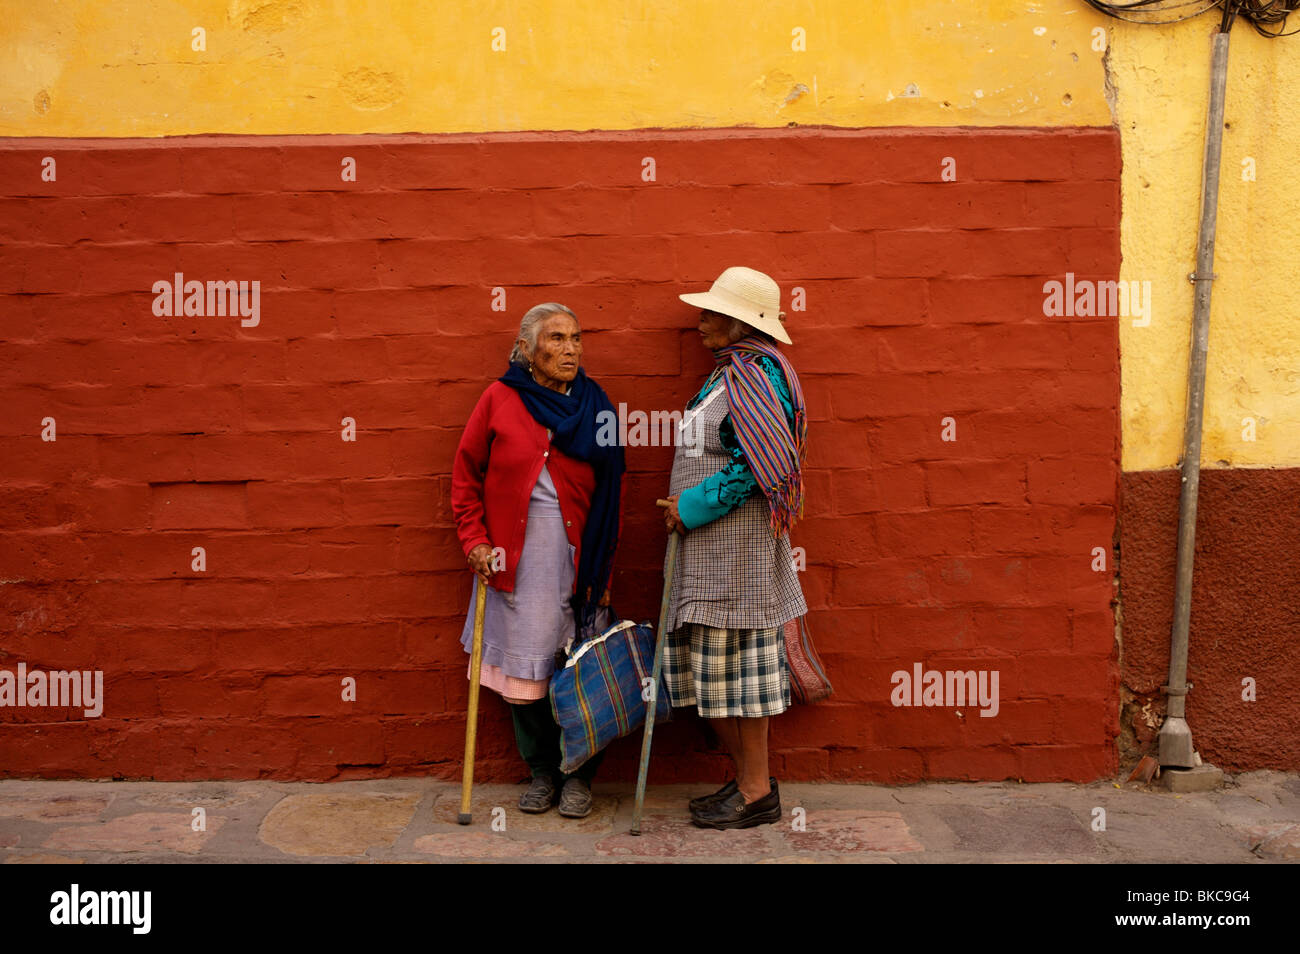 Two women chat along the sidewalk in San Miguel de Allende, Mexico - Stock Image